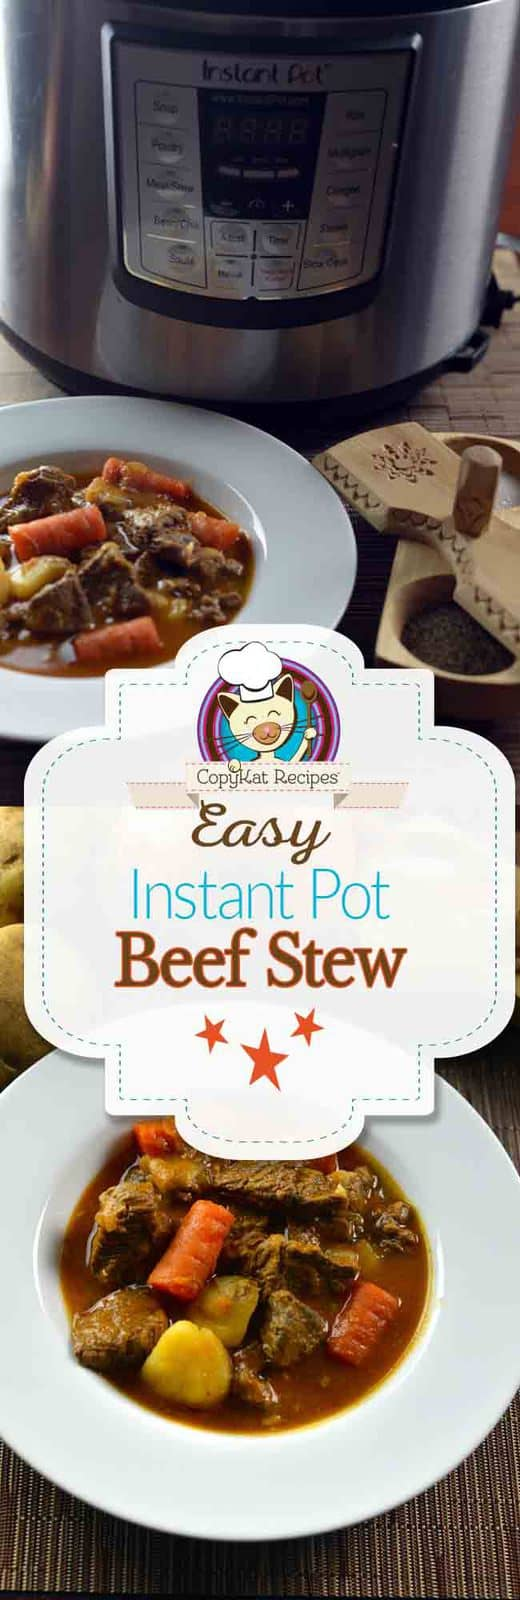 Make delicious beef stew in an Instant Pot with this easy recipe.